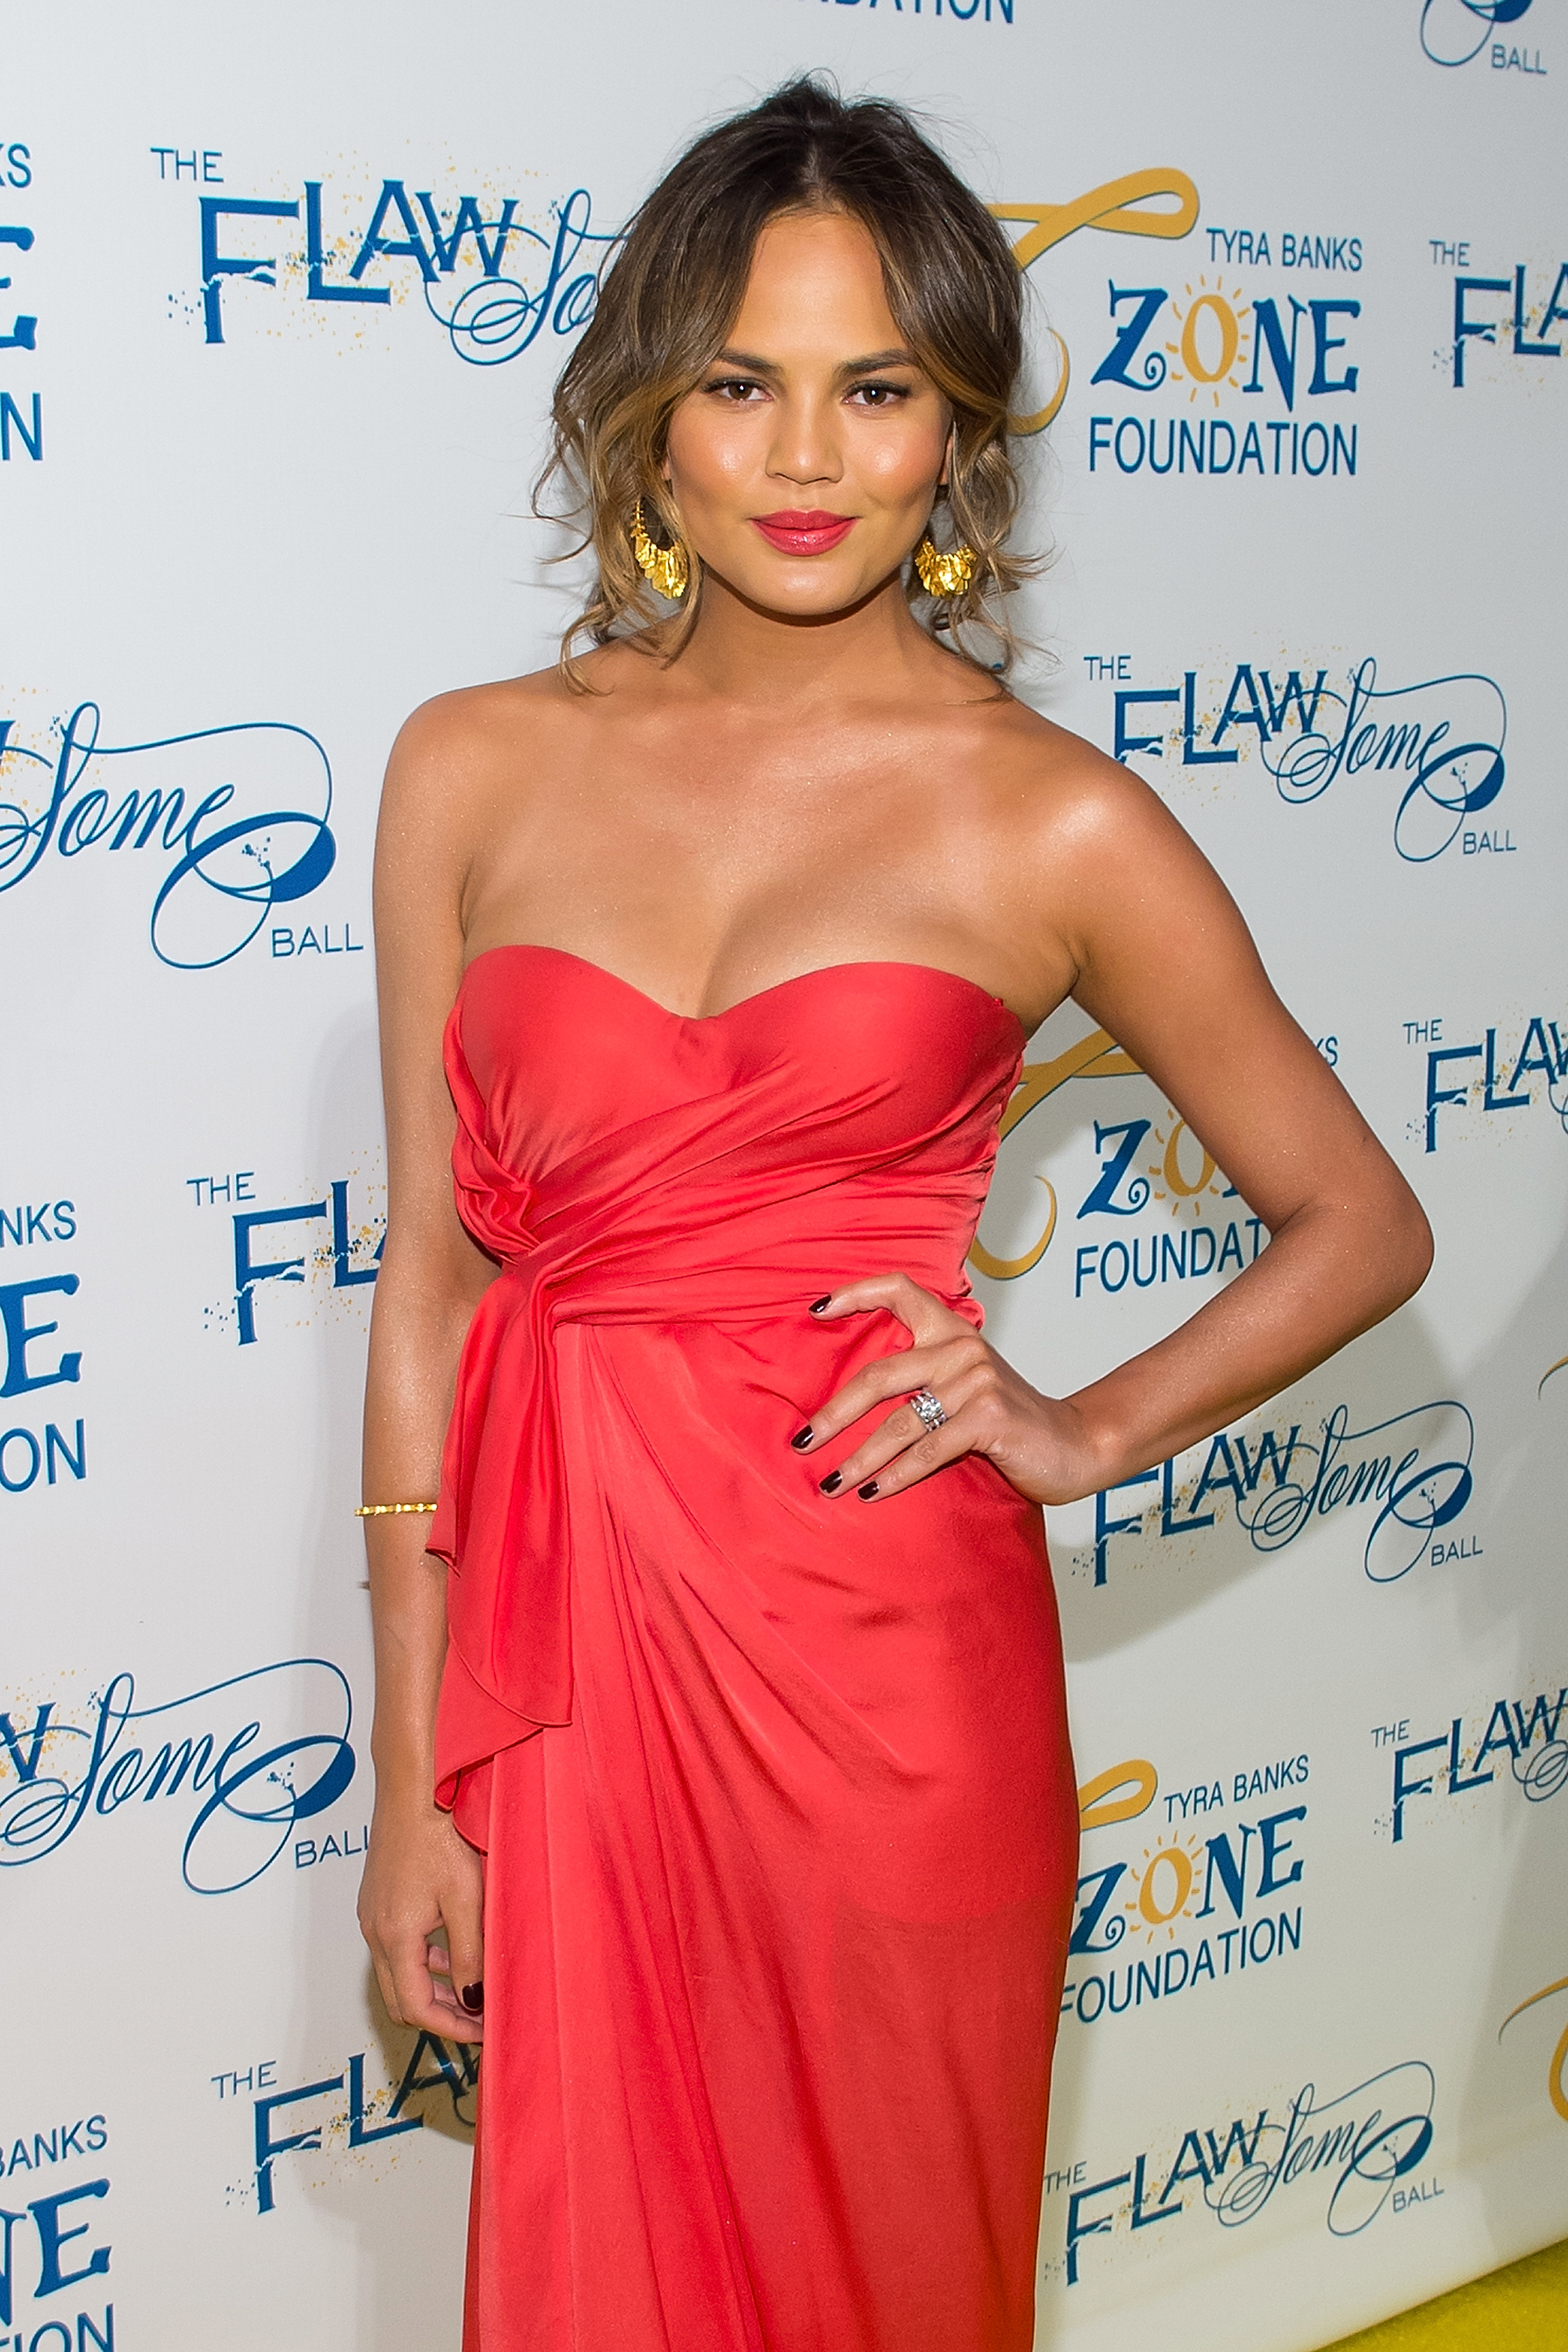 5 Summer styles lessons inspired by Chrissy Teigen